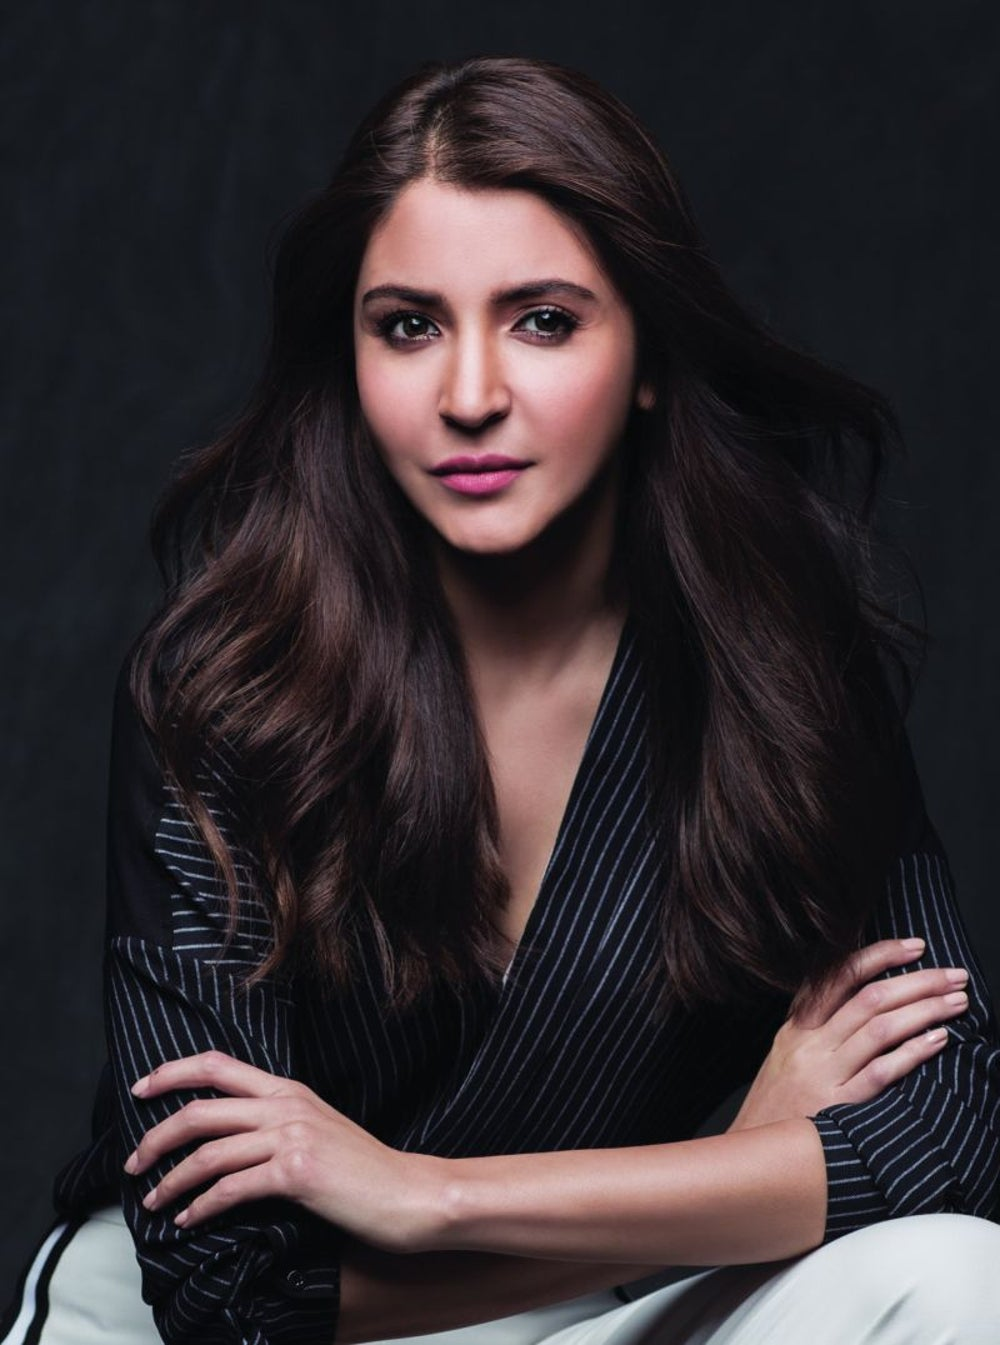 Anushka Sharma, Actress - Producer - Making her mark on-screen and behind the scenes